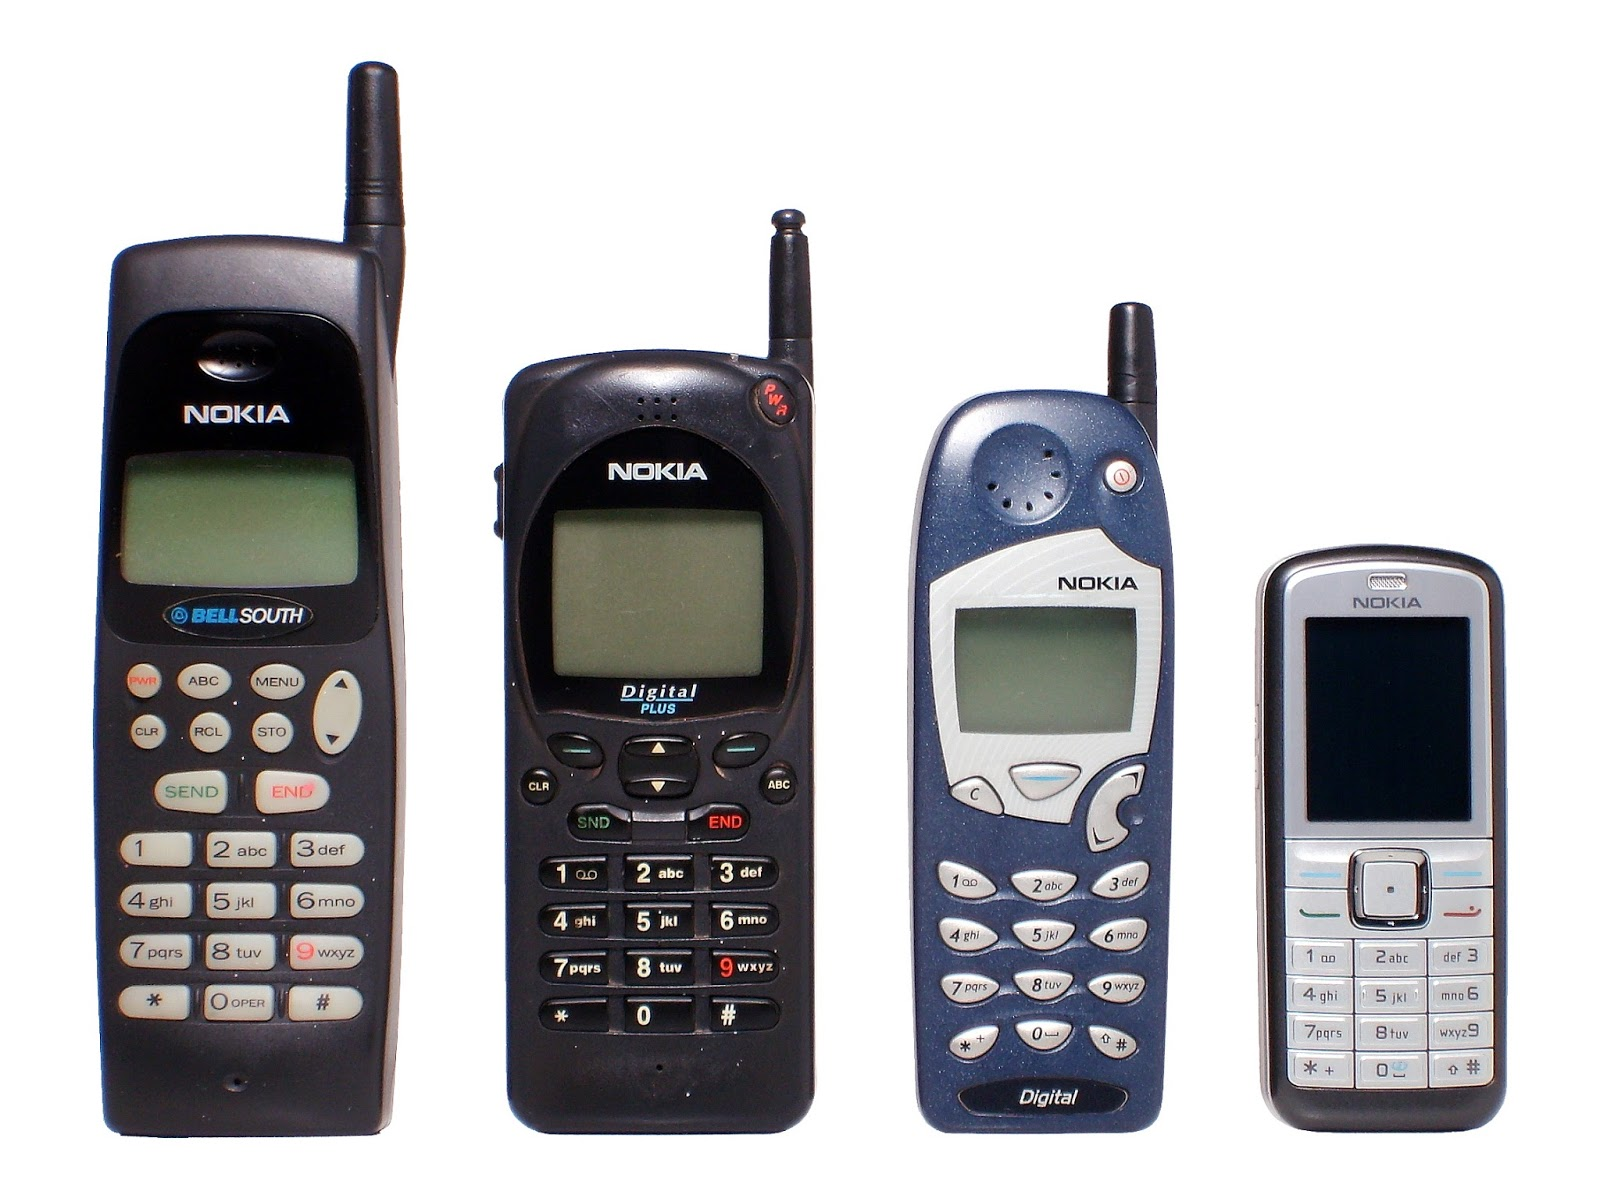 nokia mobile phones Phone reviews, ratings, and prices at cnet find the phone that is right for you mobile phones products phone reviews phone reviews best phones buying guide quick links iphones nokia's newest midrange phone features a sleek aluminum design and zeiss camera optics.